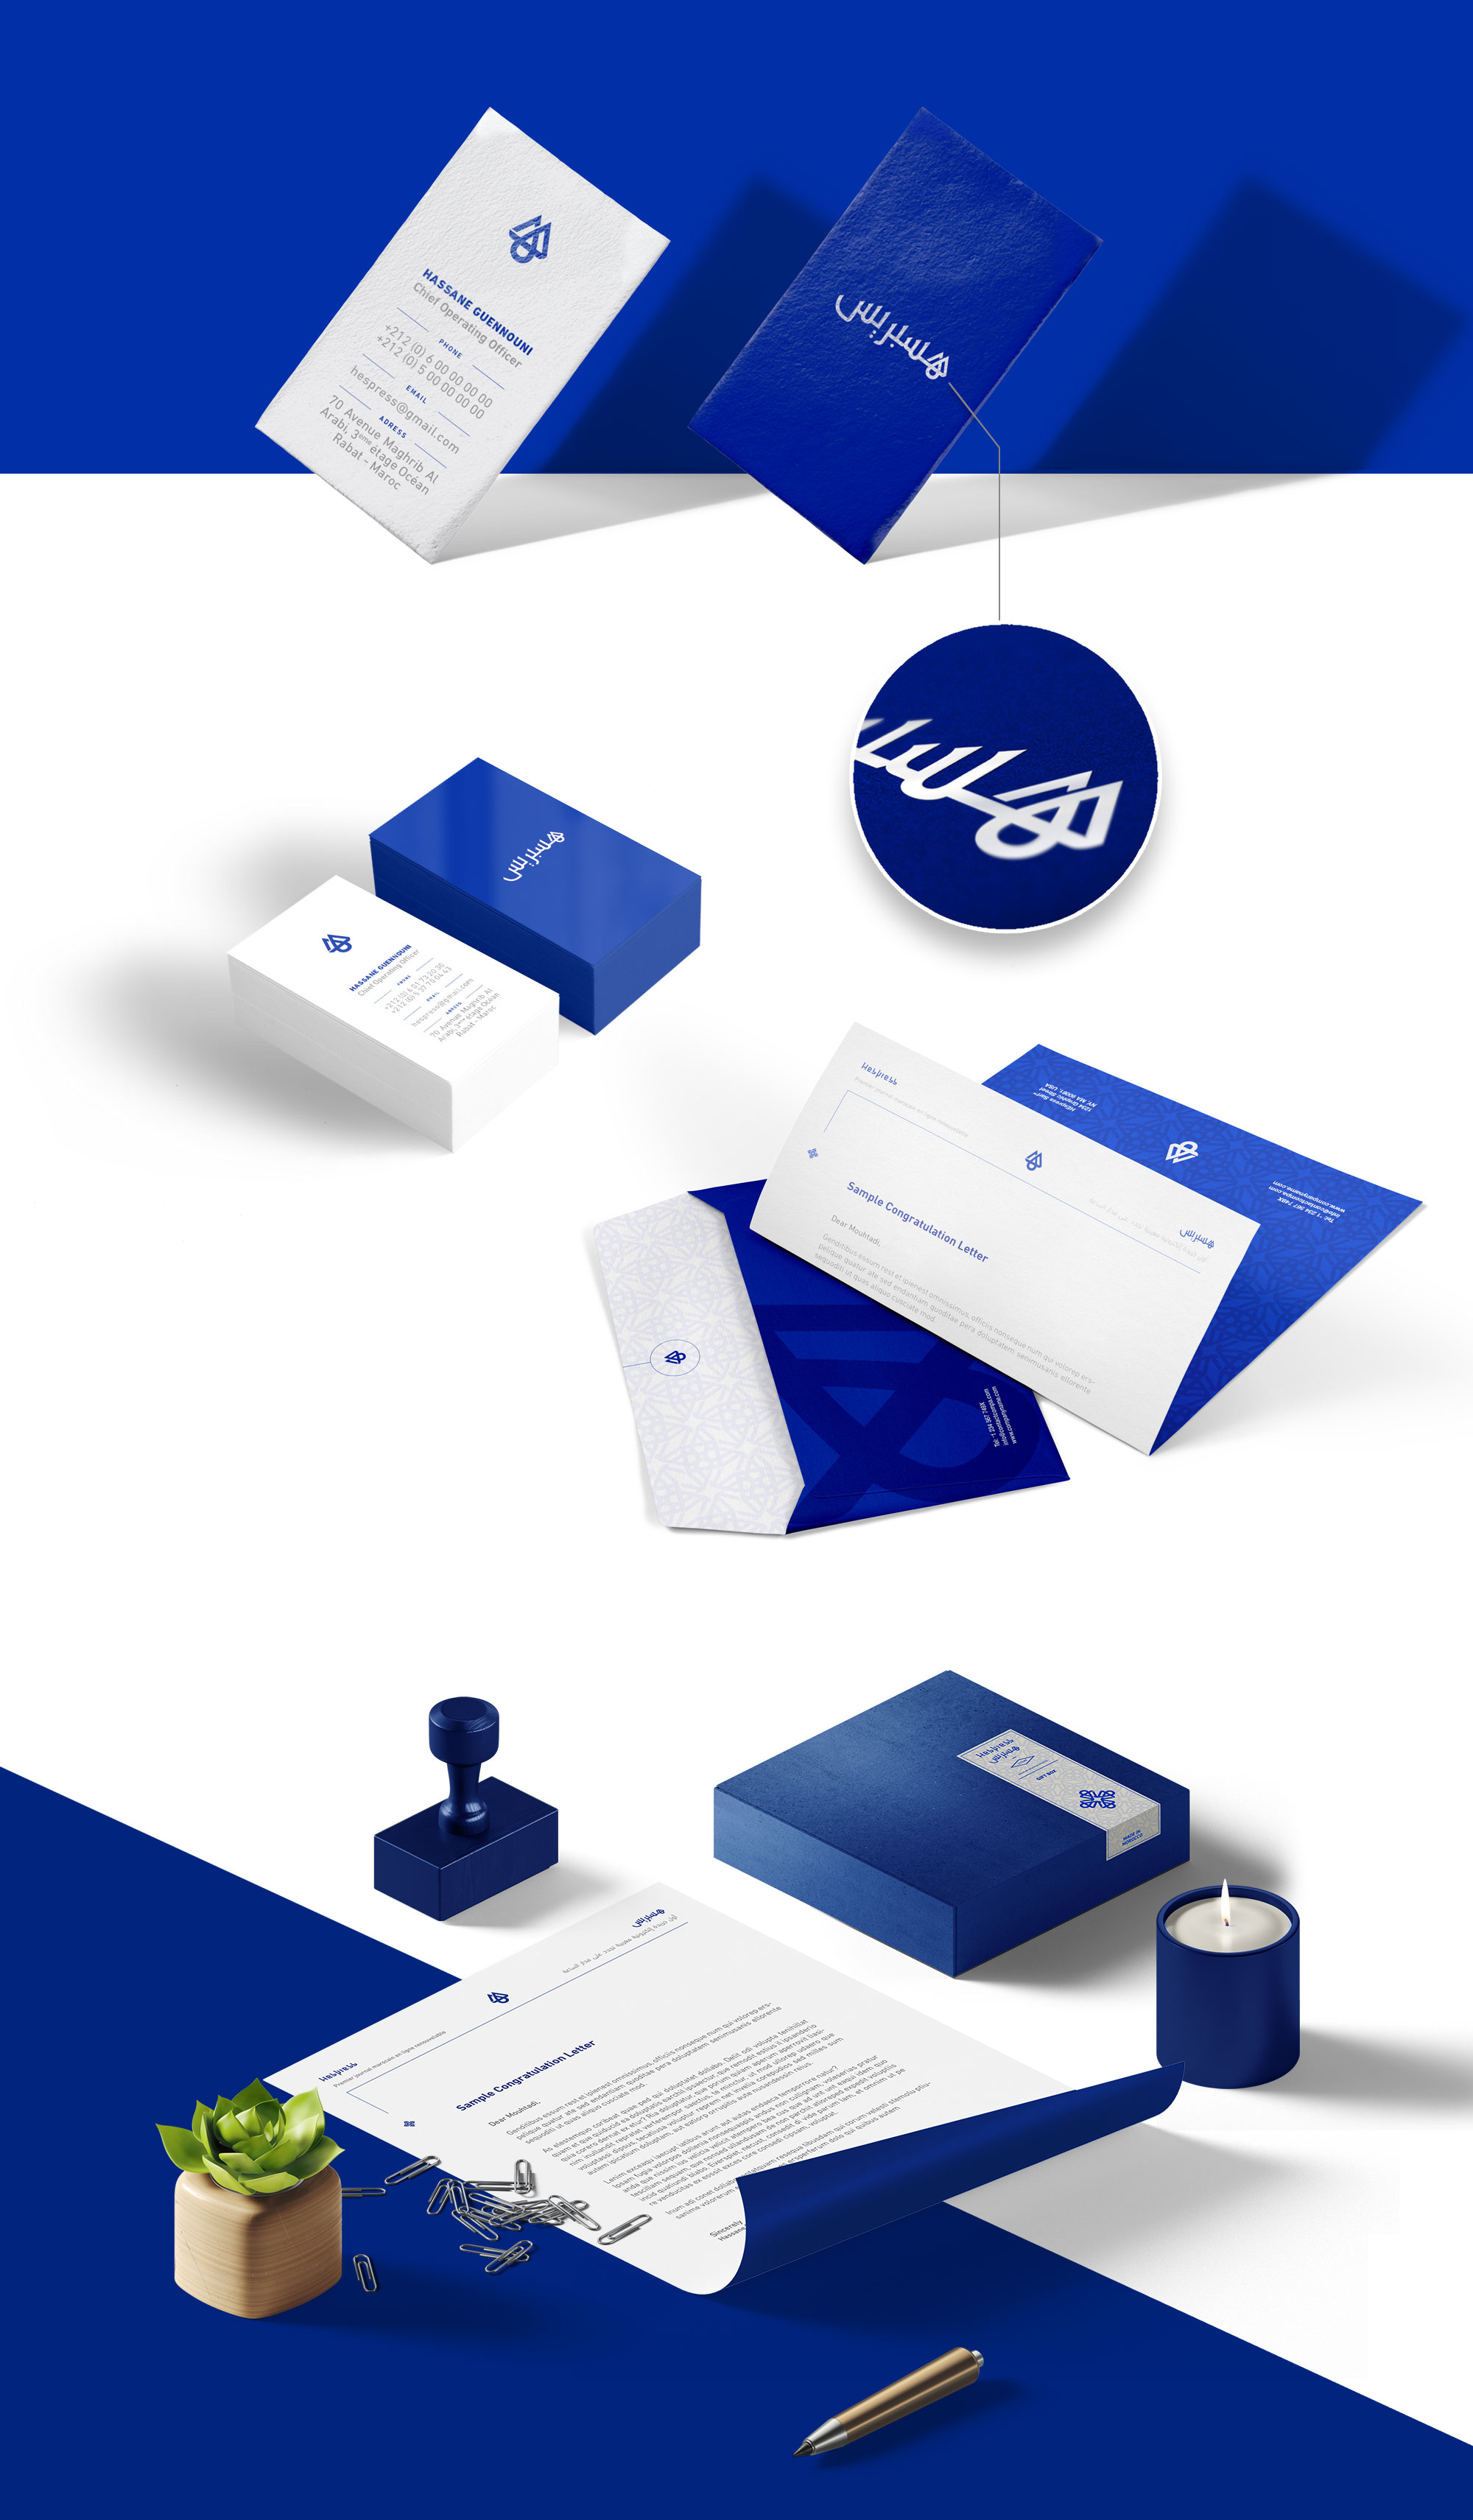 branding-hespress-logo-corporate-design-mouhtadi-design_06